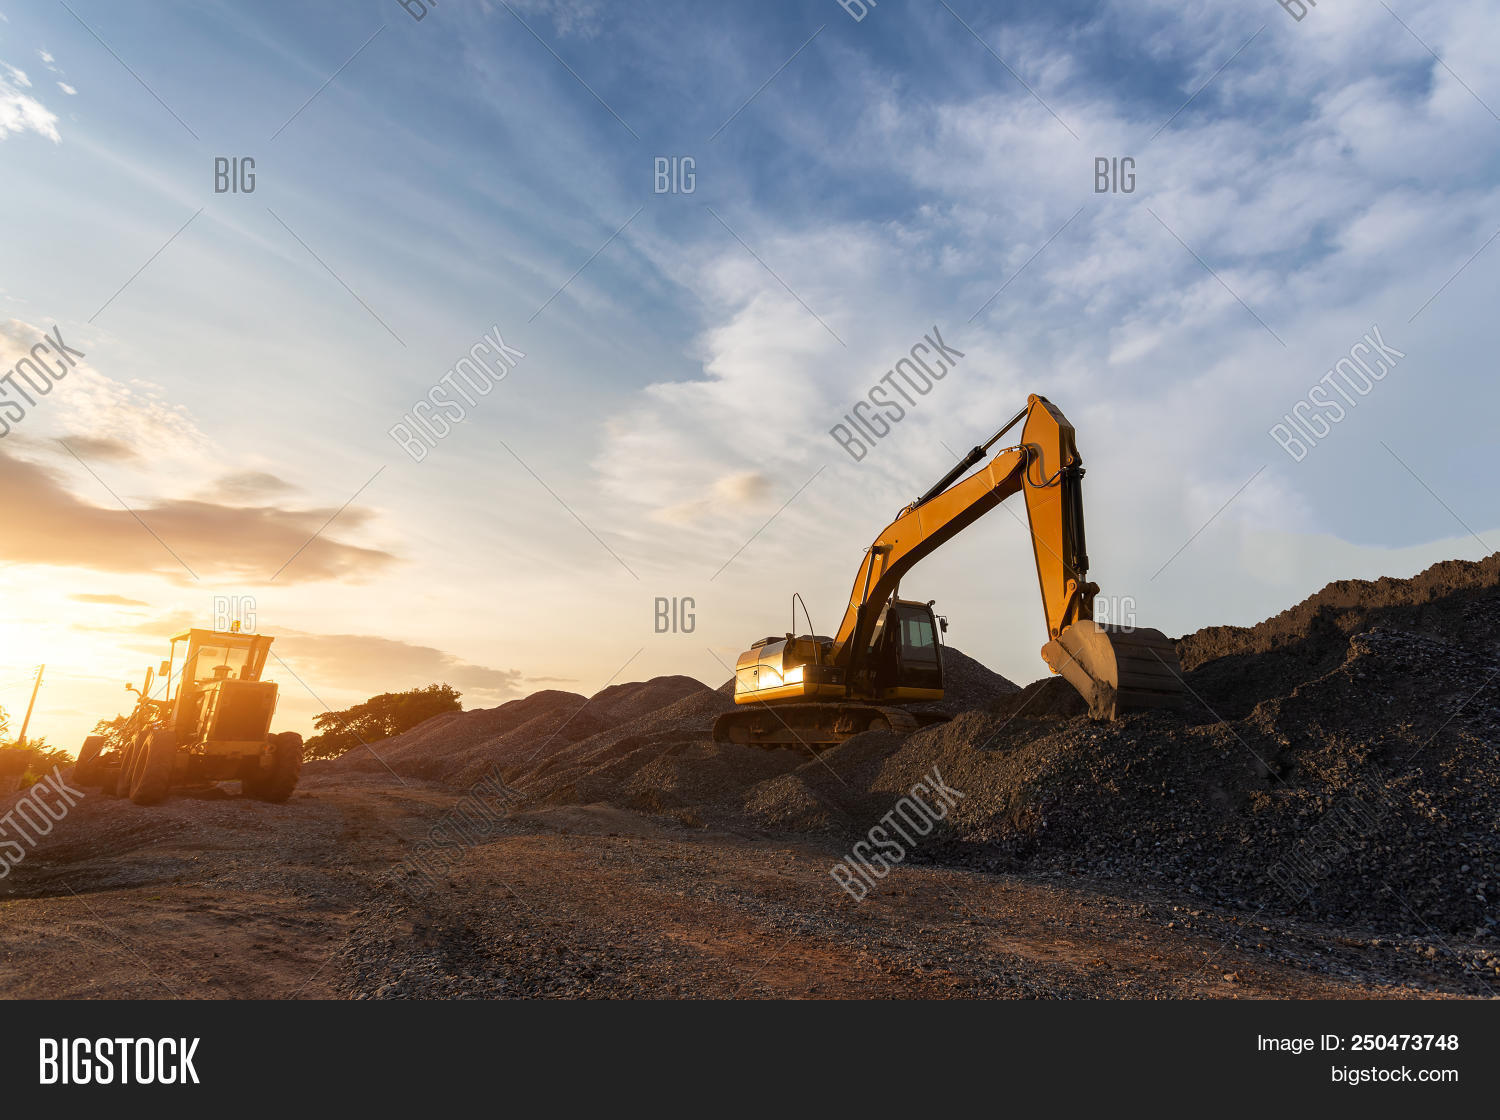 Backhoe Used Image & Photo (Free Trial) | Bigstock